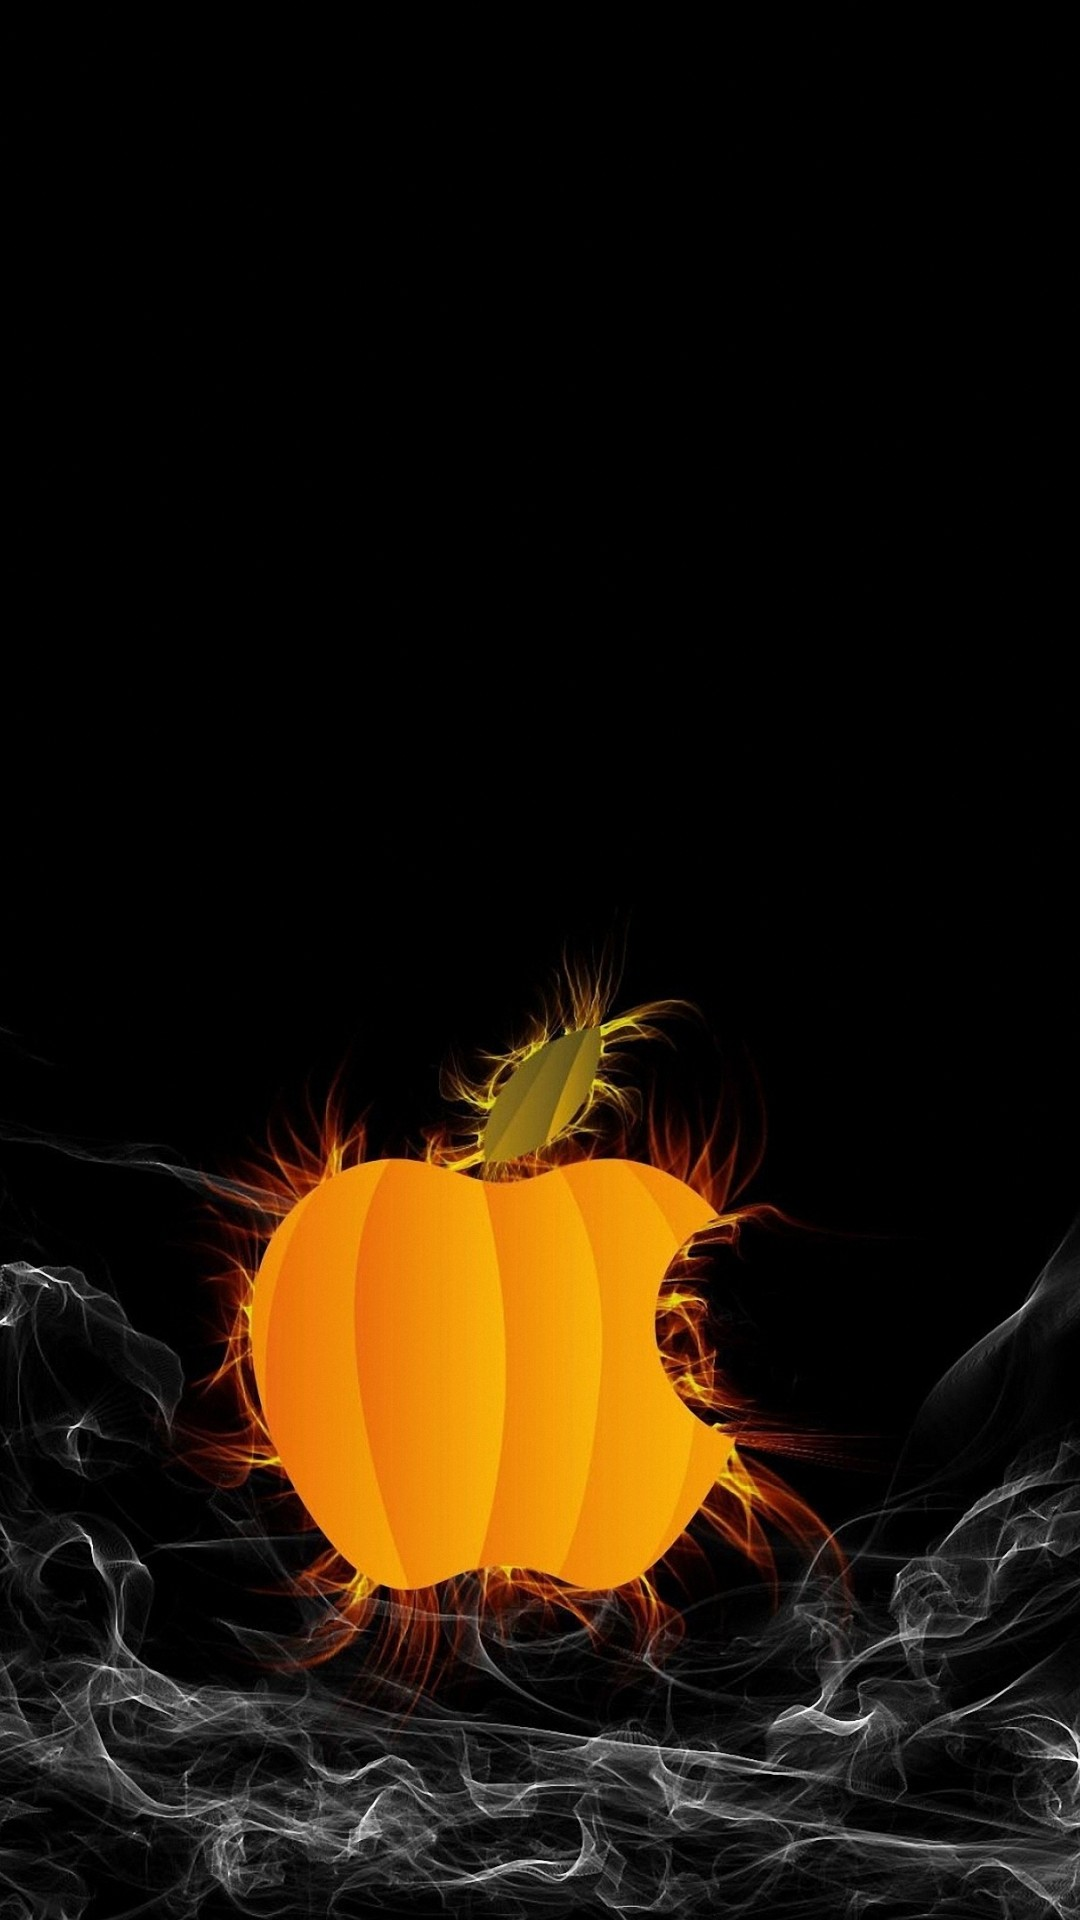 72 Live Halloween Wallpaper For Iphone